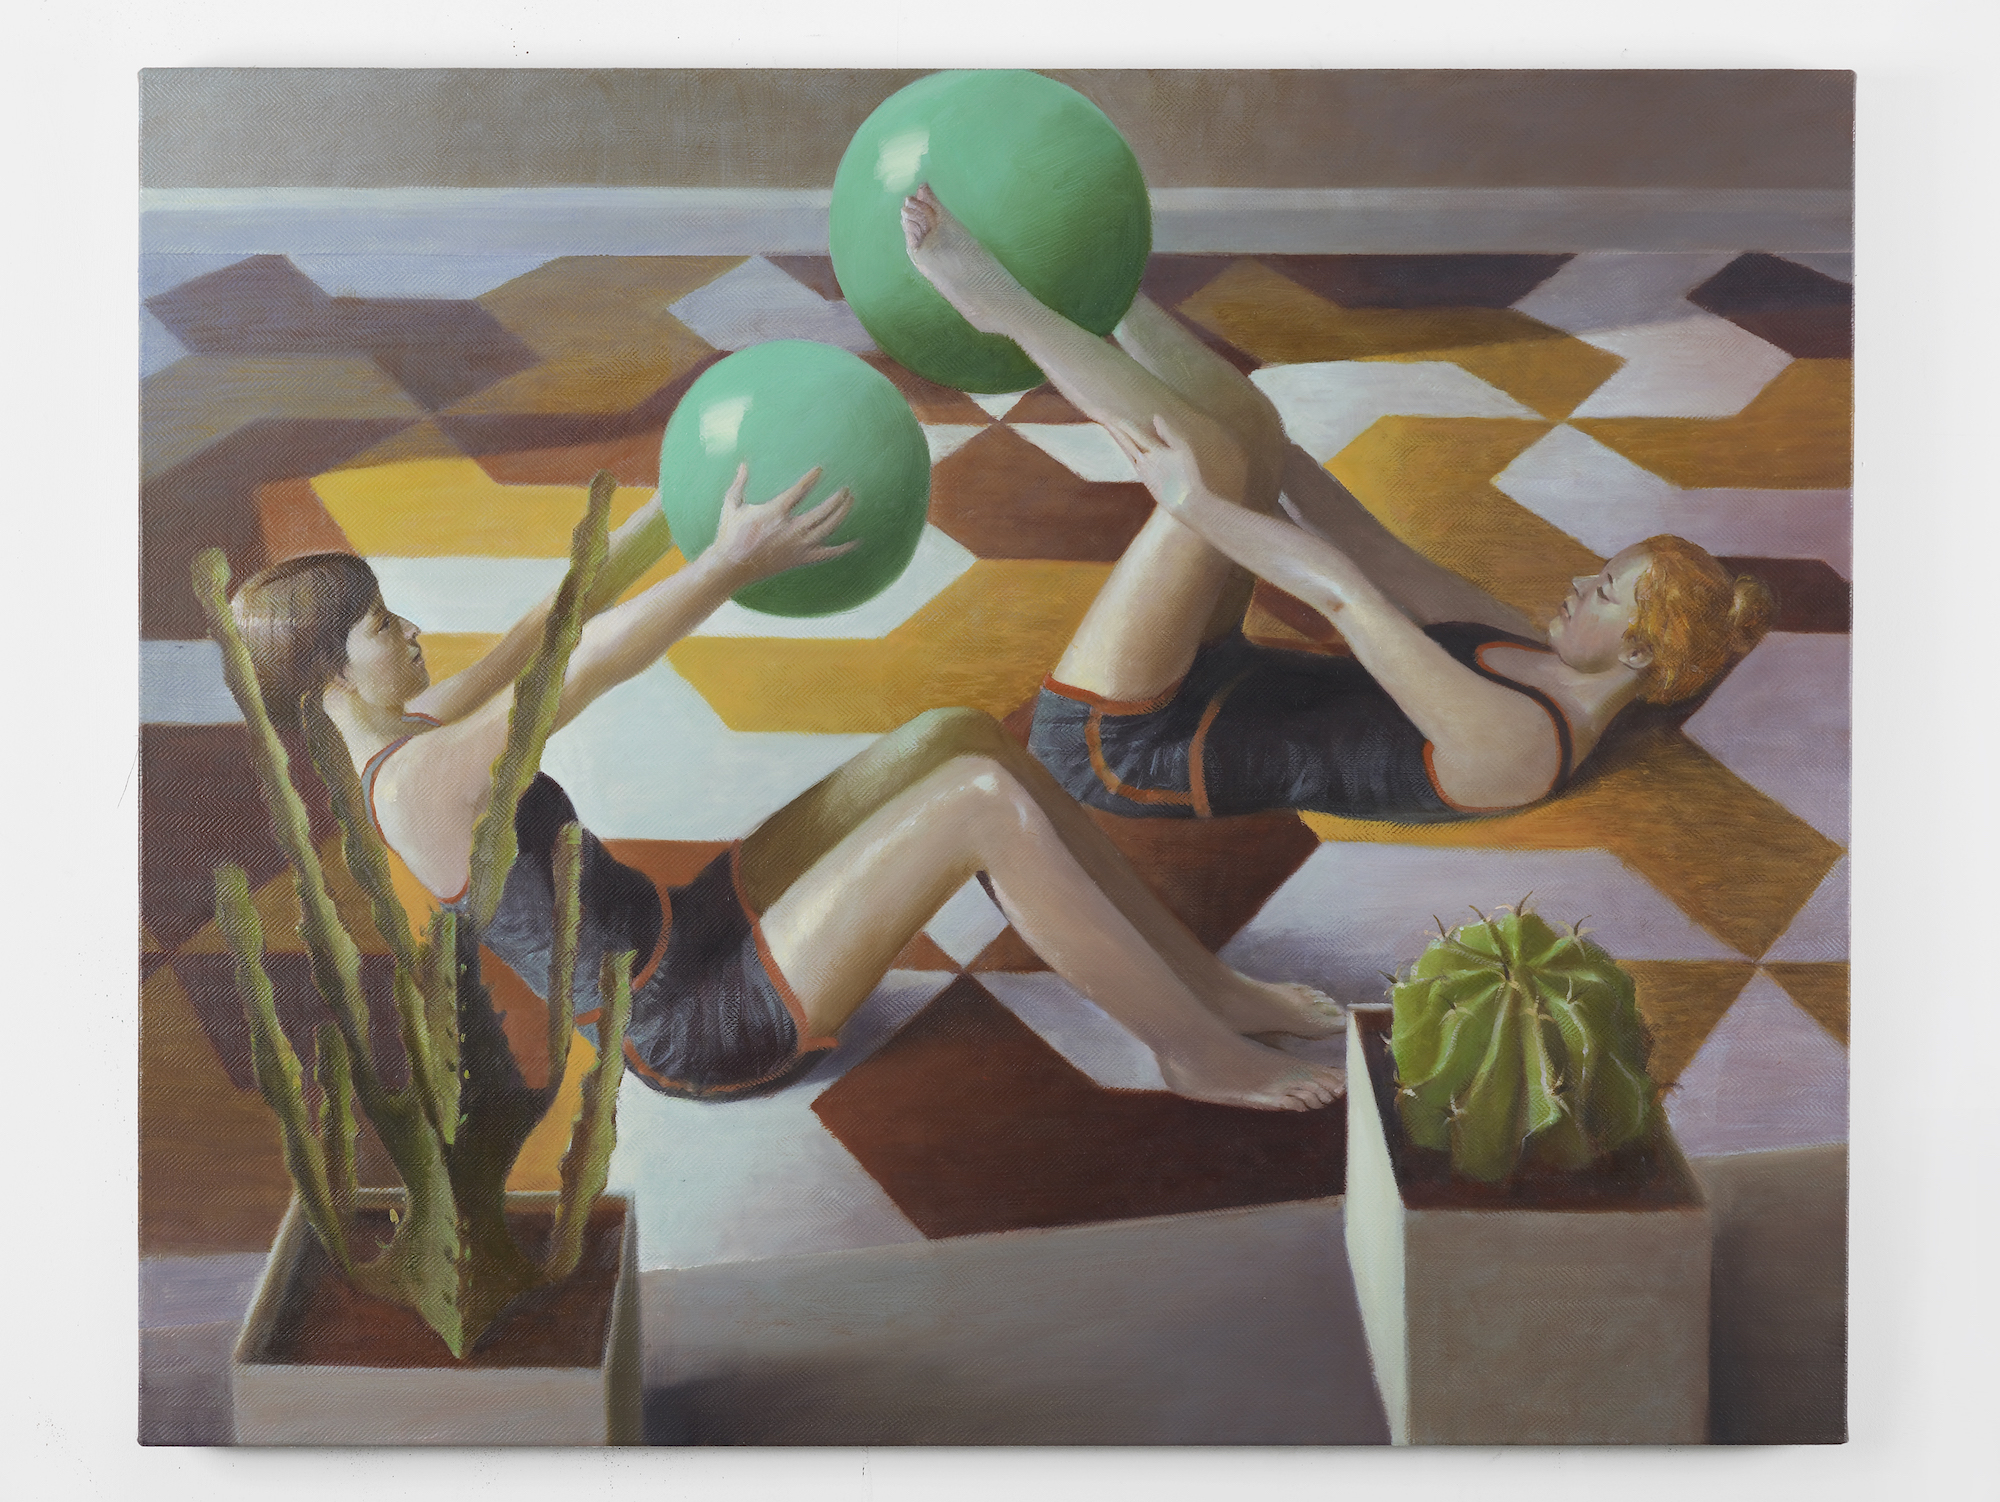 Ball Games V 2014 Oil on linen 80 x 100 cm